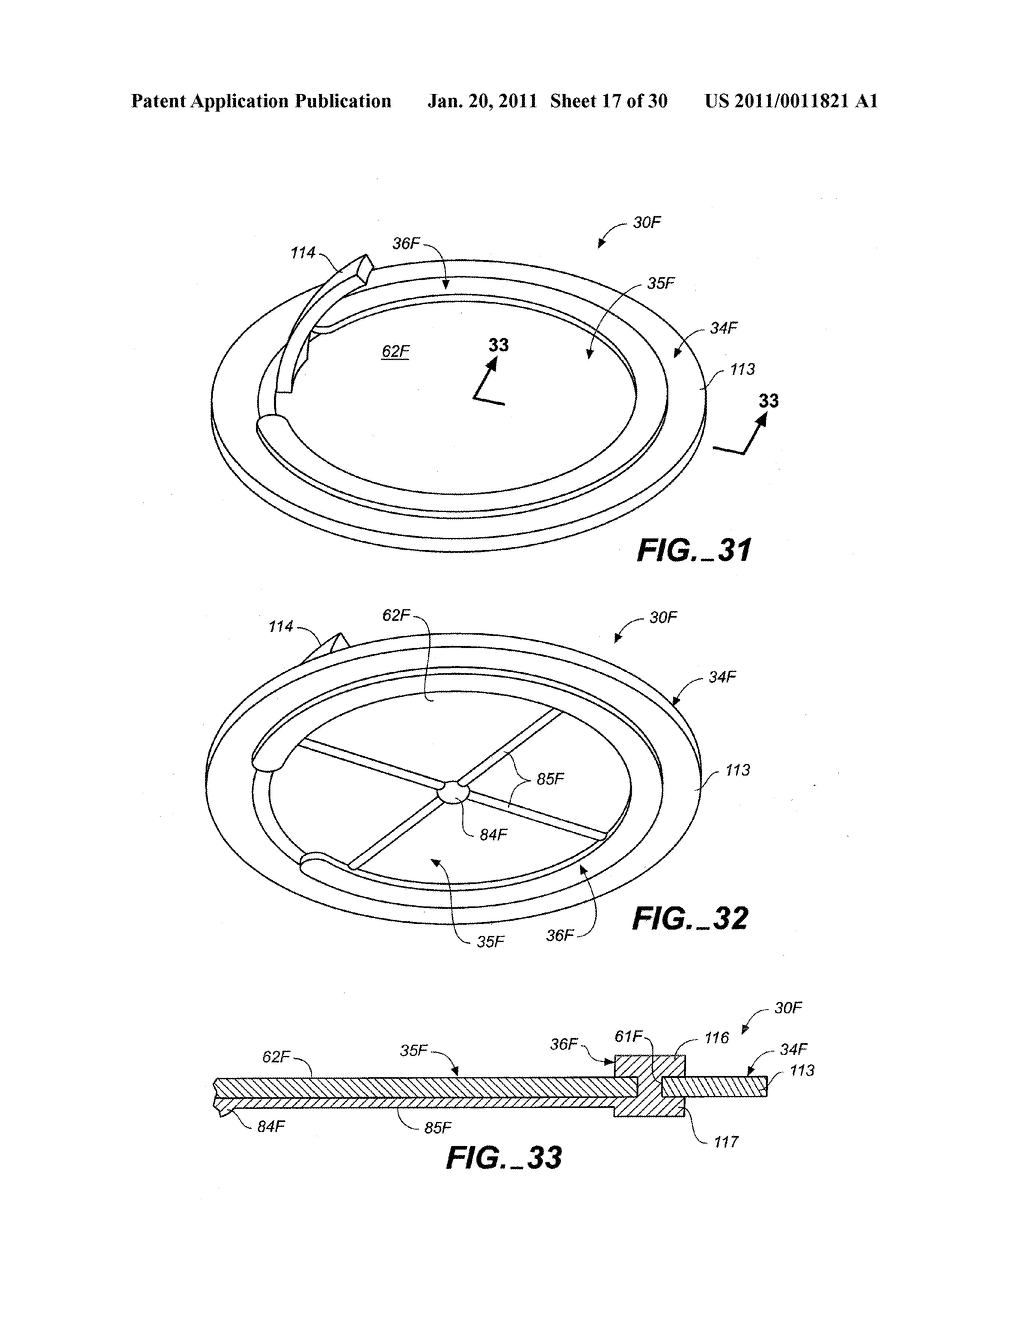 DESIGN AND MANUFACTURE OF REMOVABLE MEMBRANE SEALING COMPONENTS FOR CONSUMER PACKAGING - diagram, schematic, and image 18